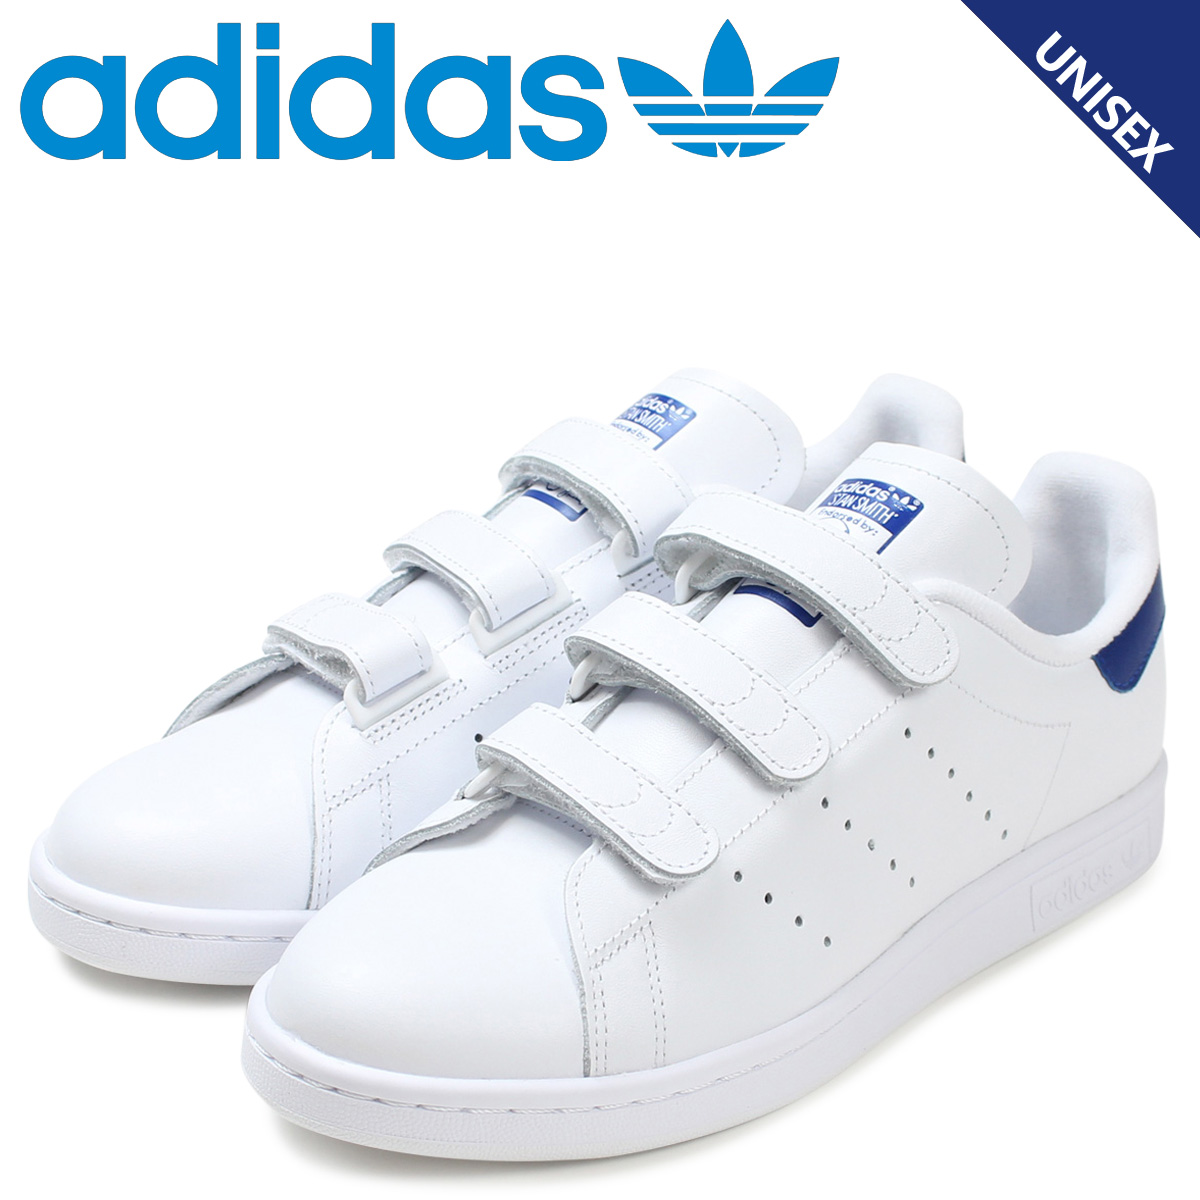 check out b7b22 8df10 Classic Mark symbolizes the adidas three lines are simple yet also said the  face of the brand impact and the classic